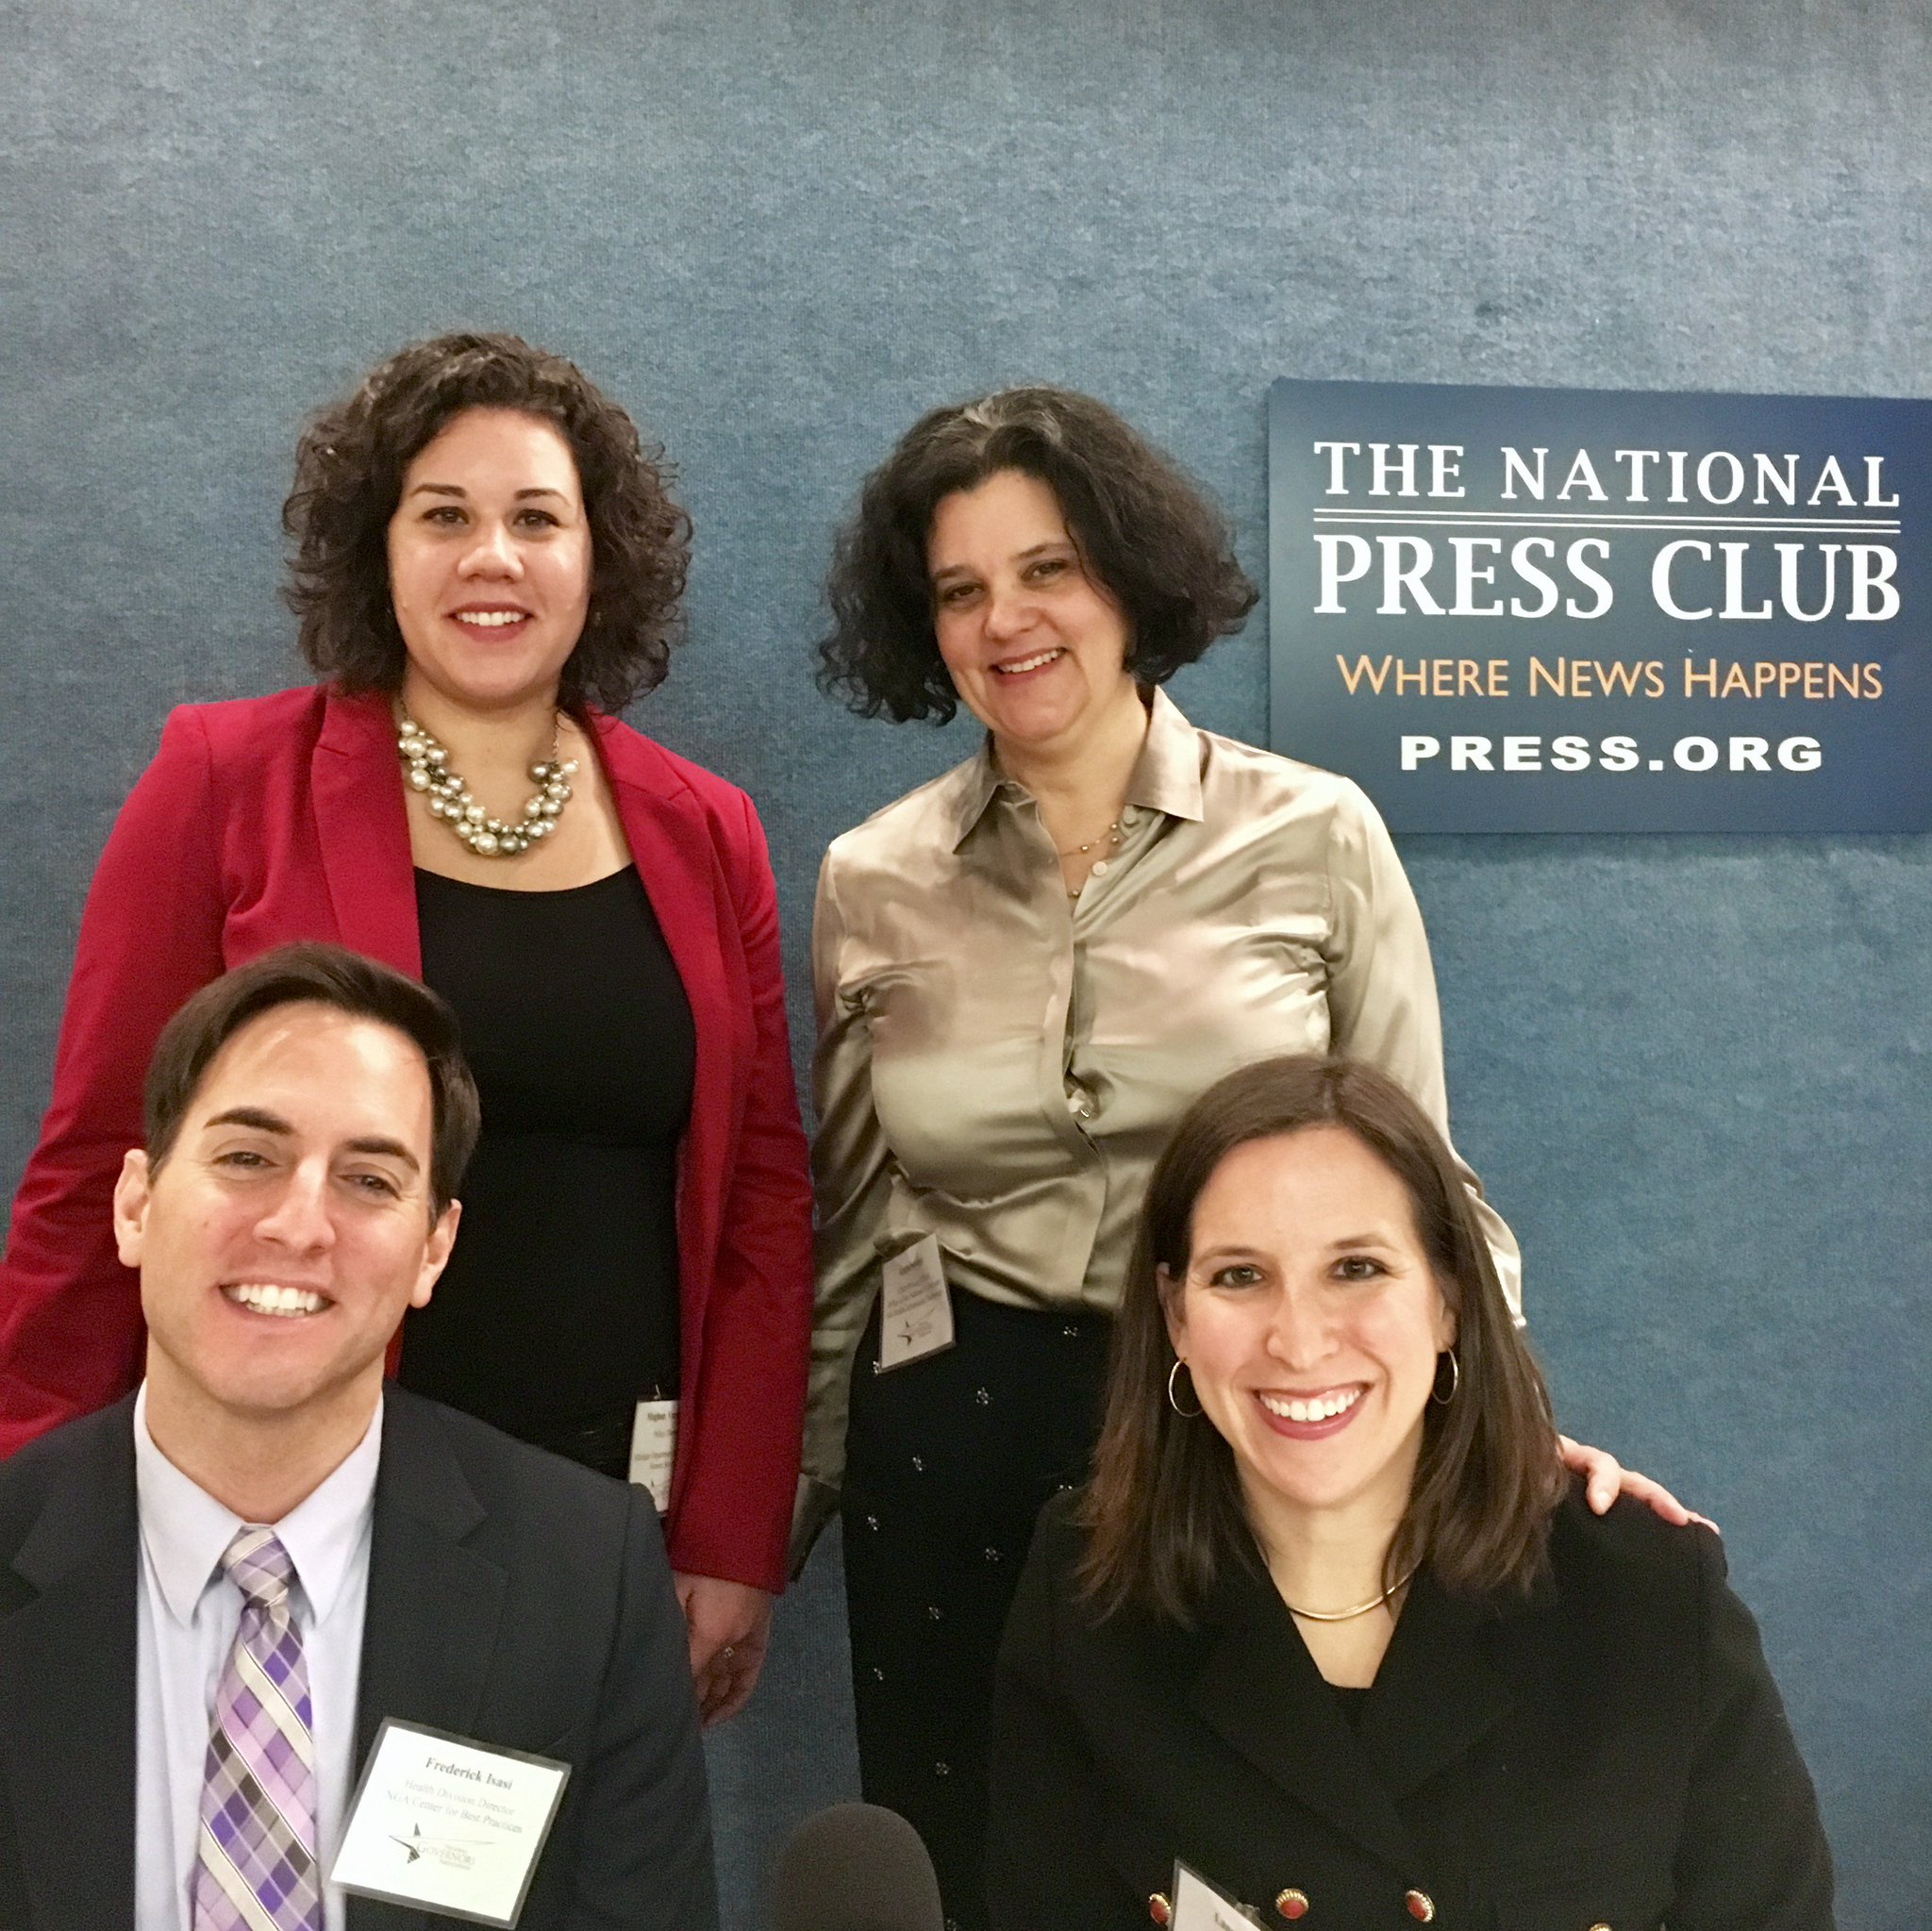 .@SavageLucia, @MichiganHHS & @NatlGovsAssoc all smiles at @PressClubDC! #healthIT #NGA2016  LIVE: https://t.co/Yq1suzyZXO https://t.co/s0tQ13rMfY